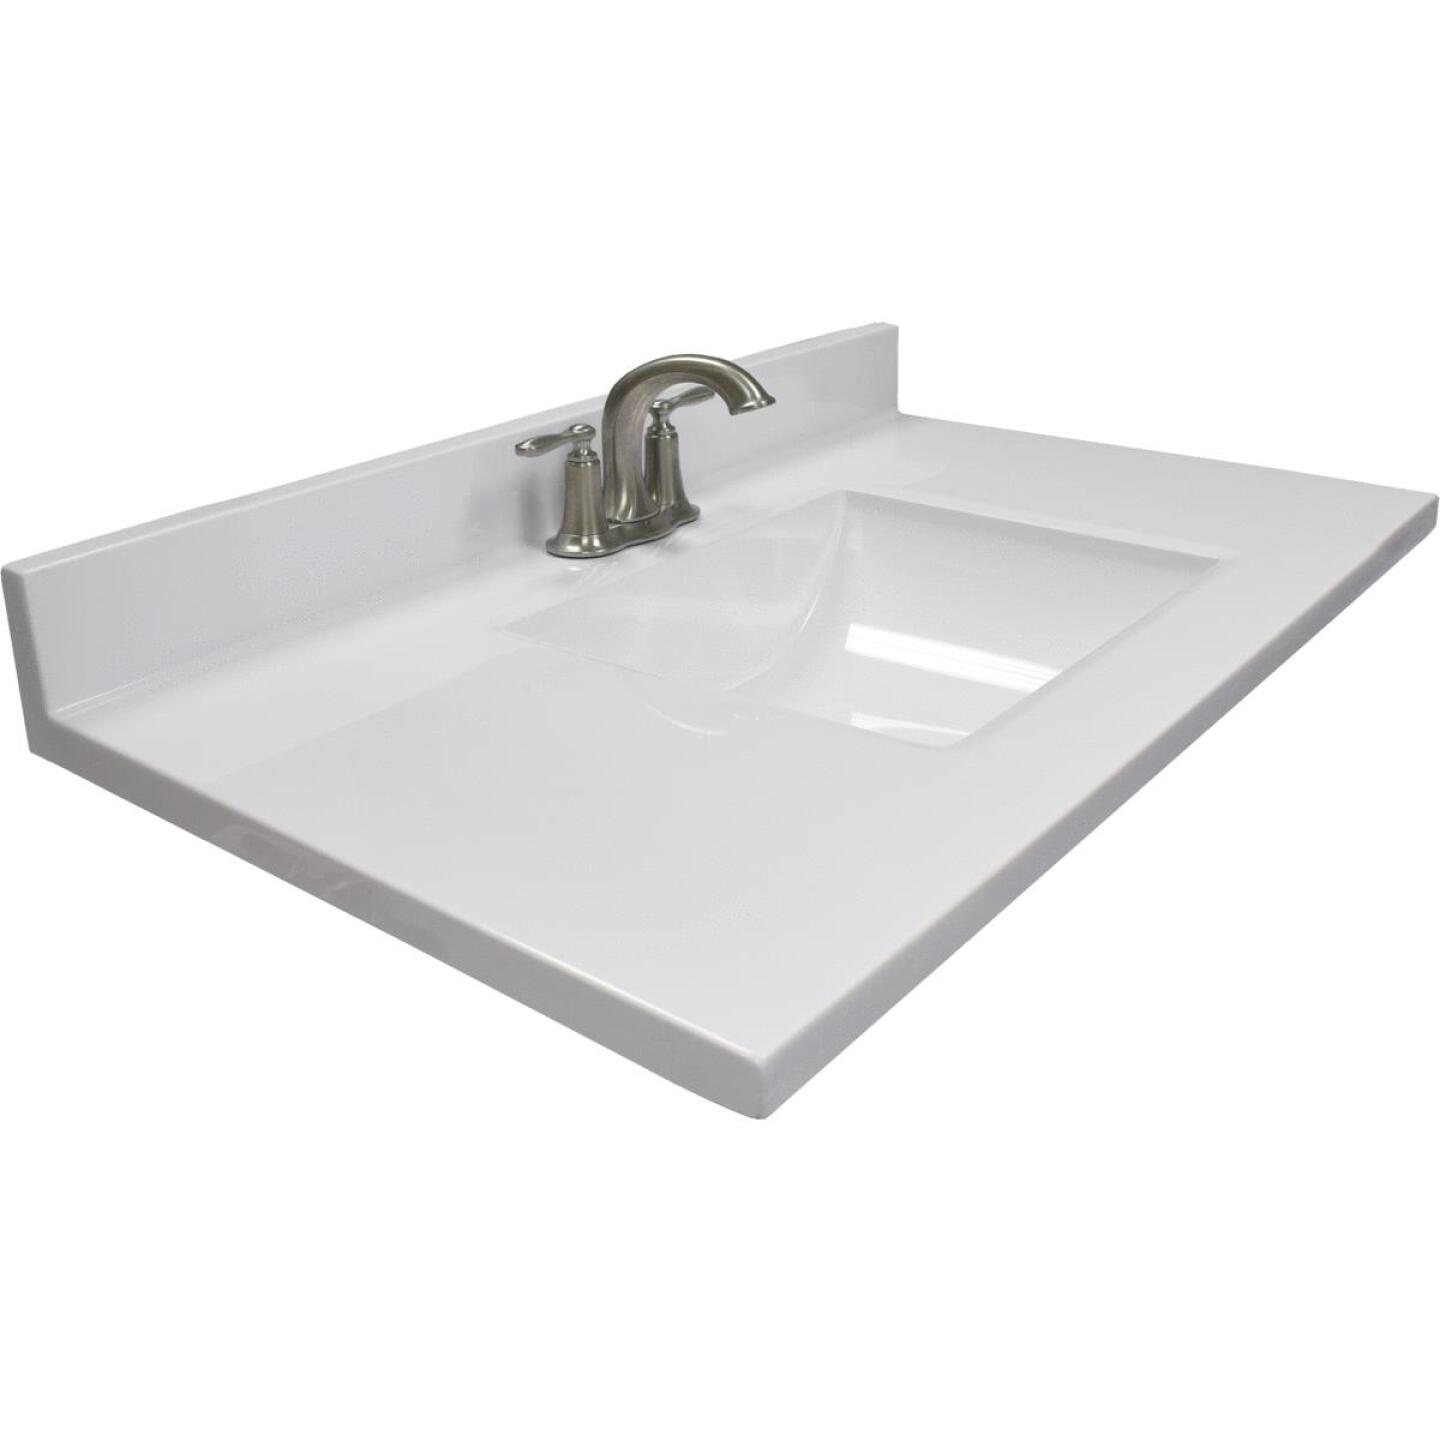 Modular Vanity Tops 37 In. W x 22 In. D Solid White Cultured Marble Vanity Top with Rectangular Wave Bowl Image 1